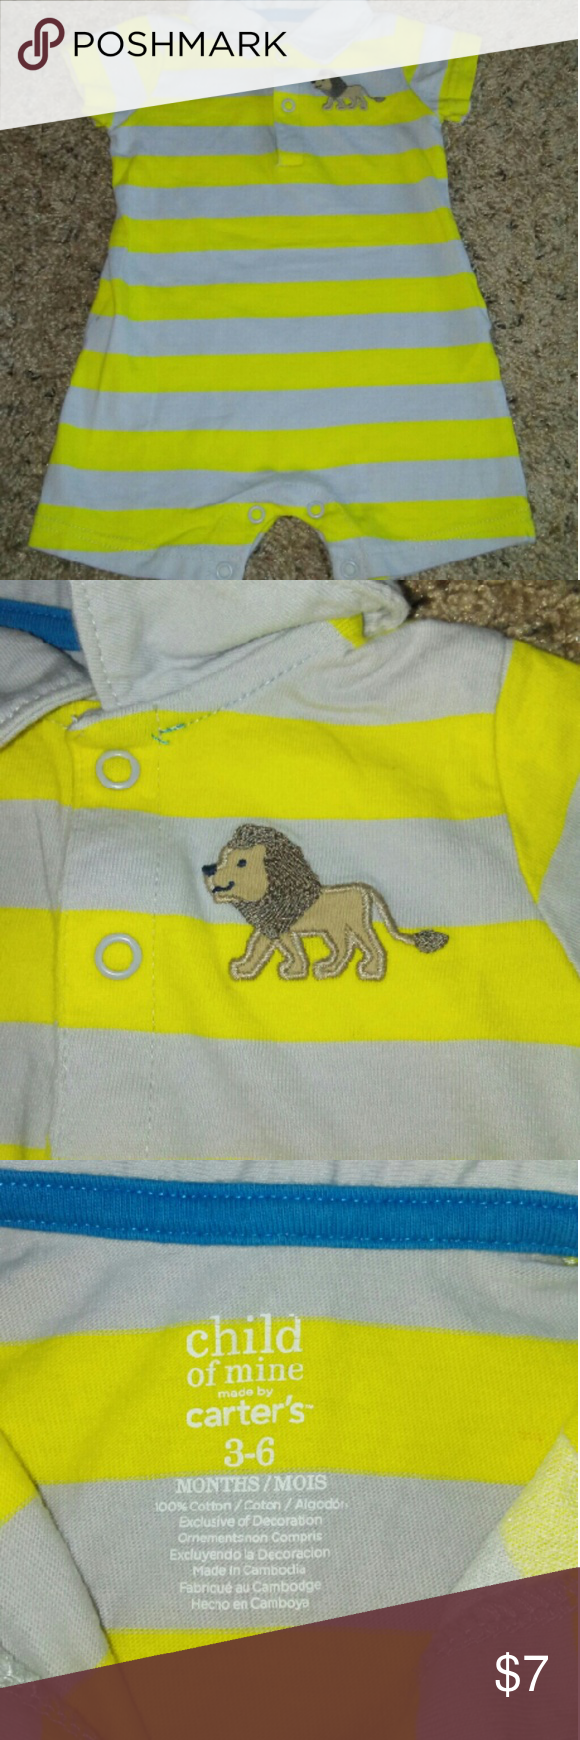 Baby Boy Clothes CLEAN, NO STAINS, one piece, romper with collar, short sleeve, shorts with lion patch, striped (gray and yellow) Carter's One Pieces